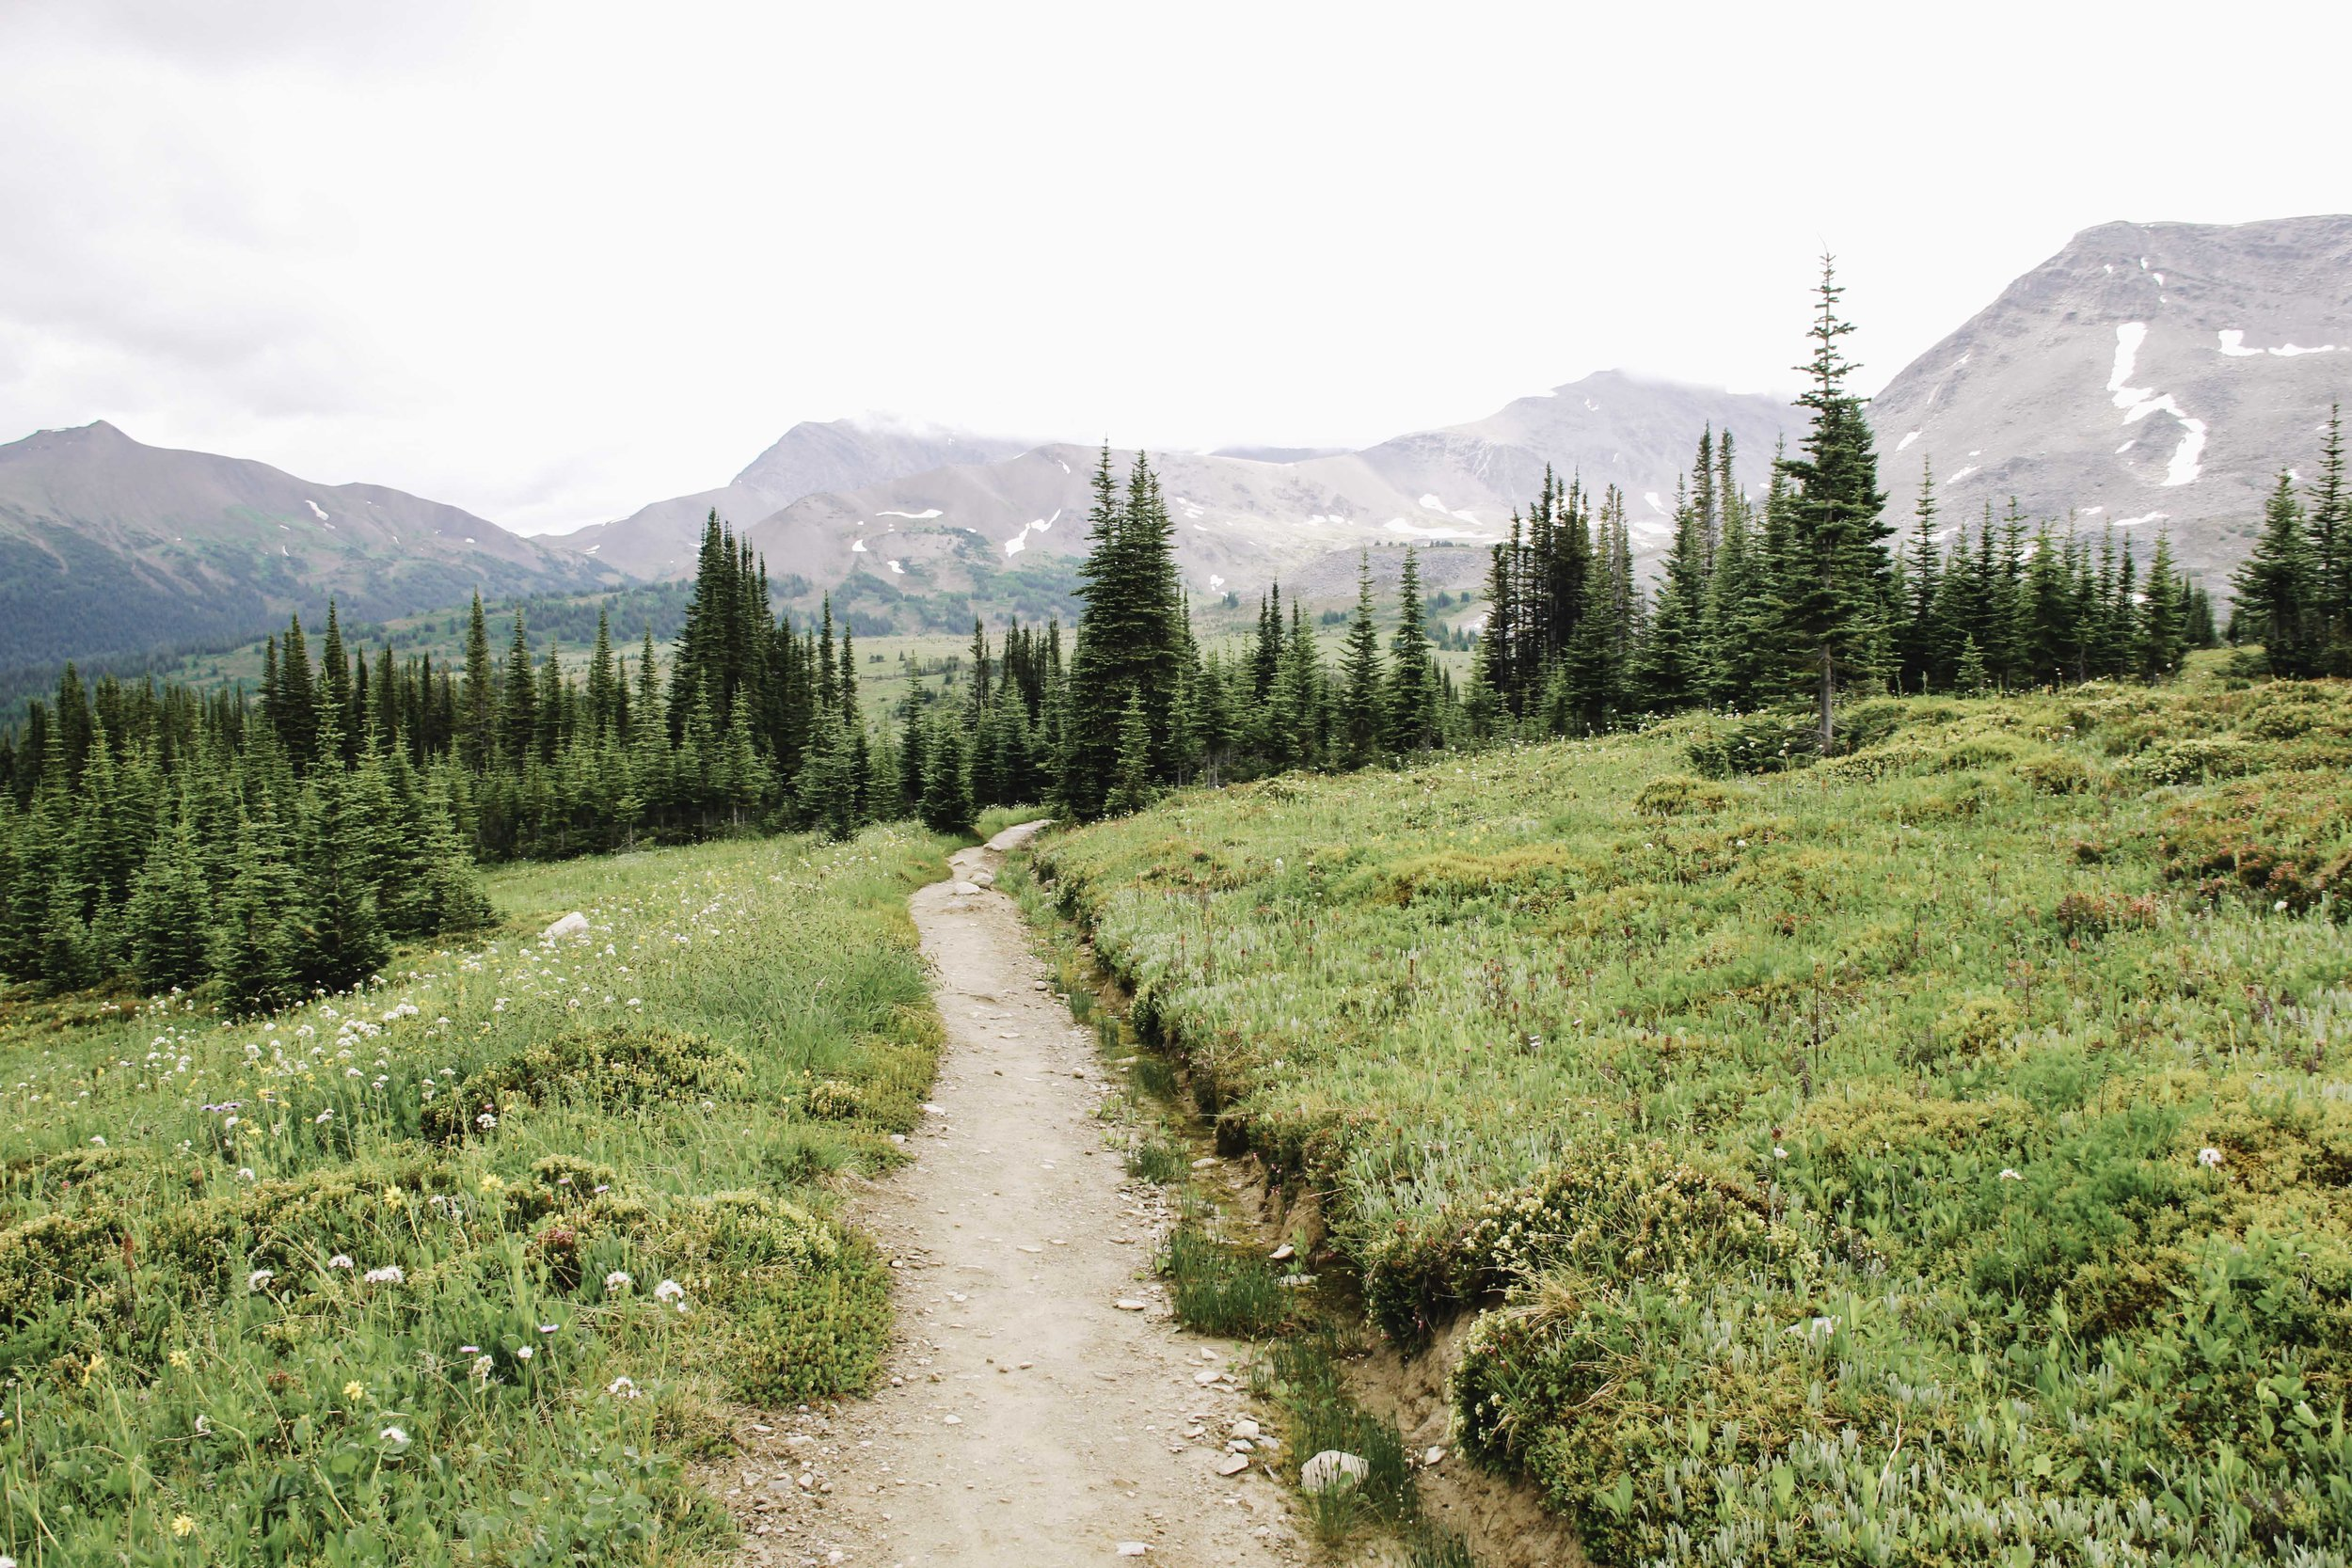 Hiking the Skyline Trail | Beyond Ordinary Guides-83.jpg